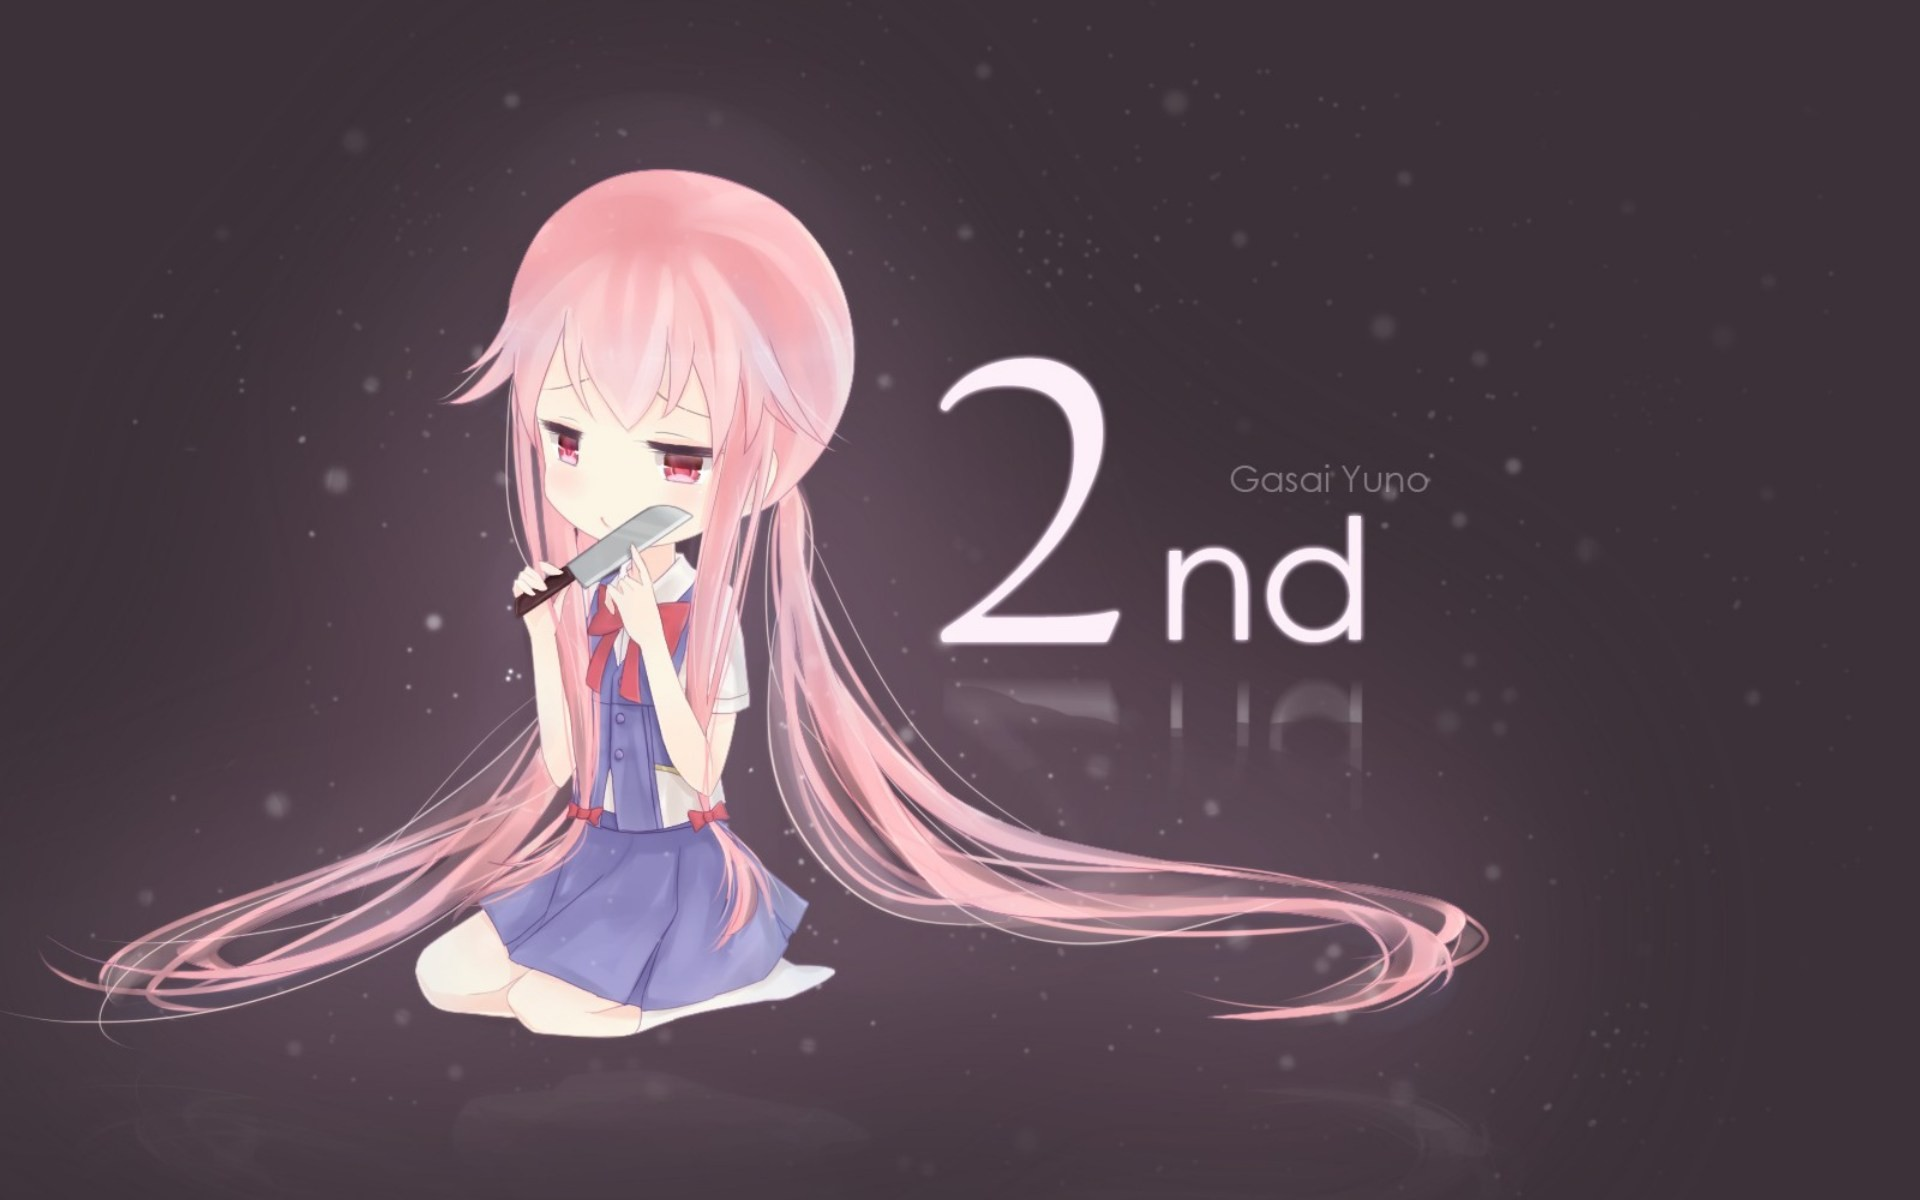 1920x1200 Yuno Gasai images Yuno♥ HD wallpaper and background photos